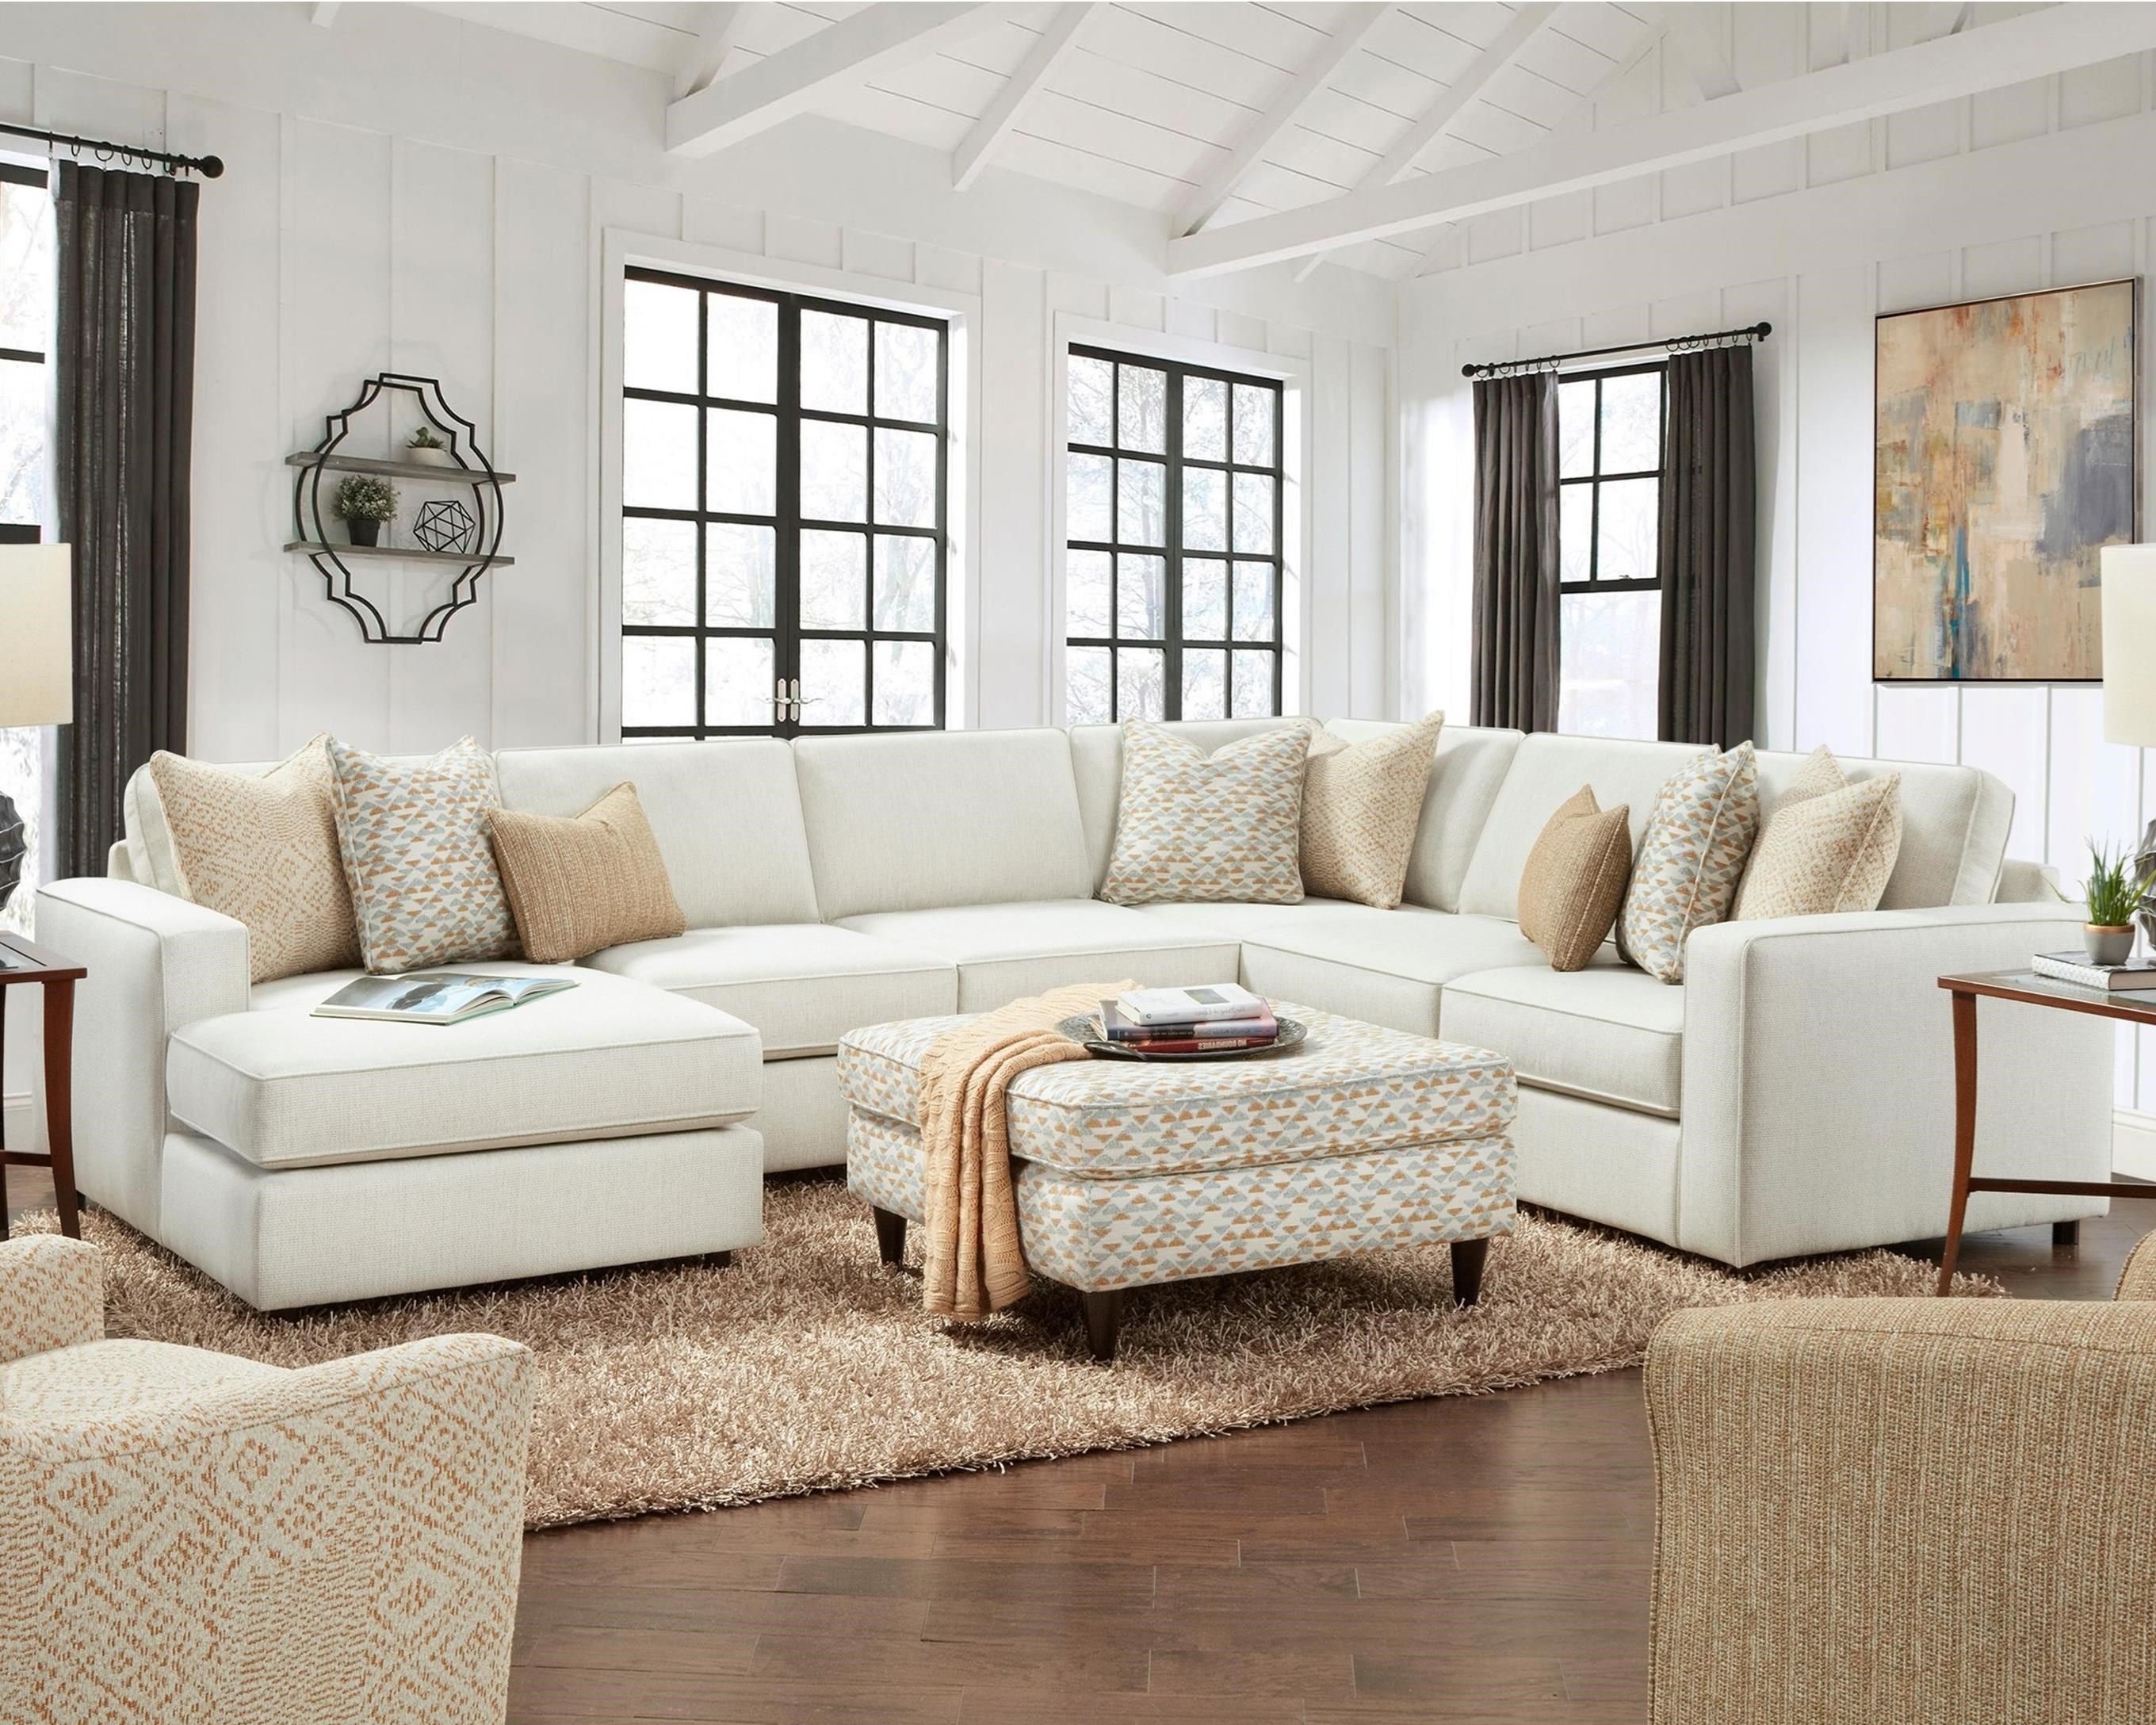 2061 4-Piece Sectional with Chaise by Fusion Furniture at Furniture Superstore - Rochester, MN